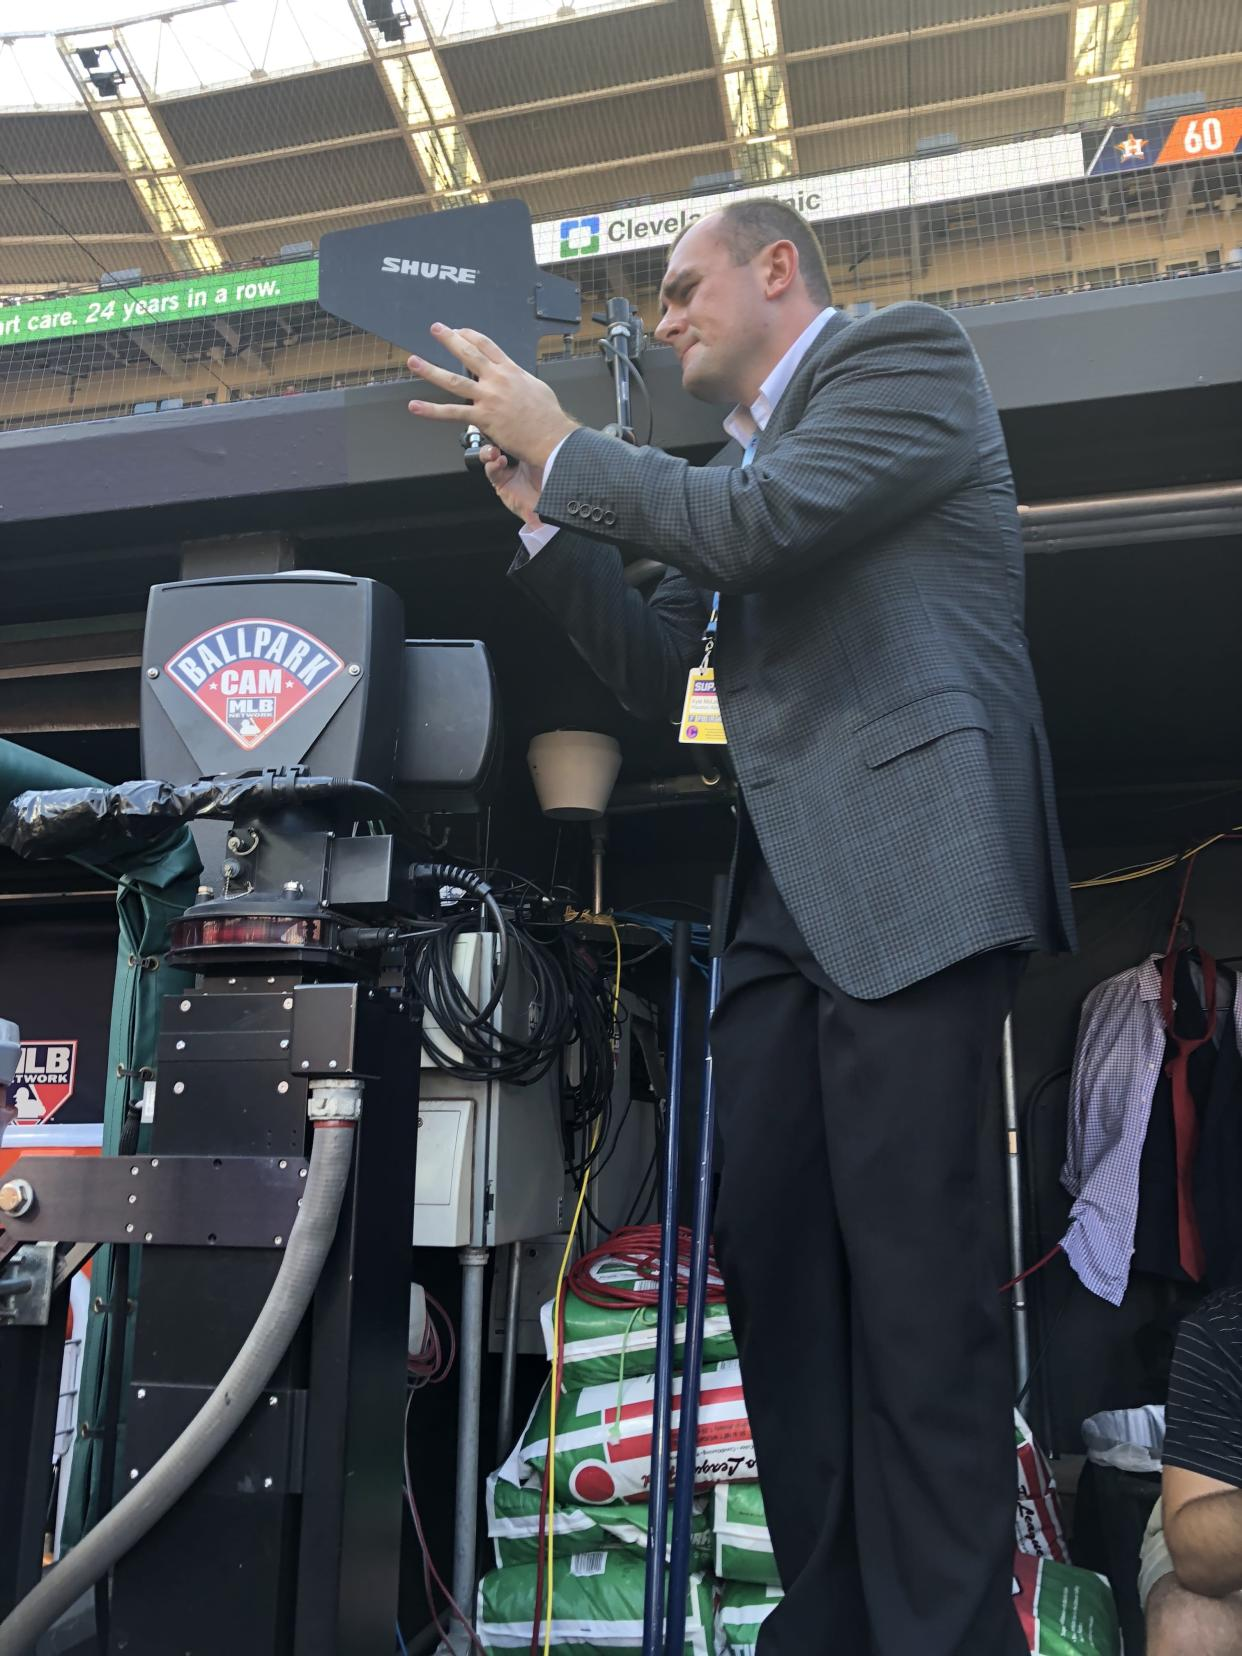 Sources: Red Sox were warned by Indians about Astros attempting to steal signs and information